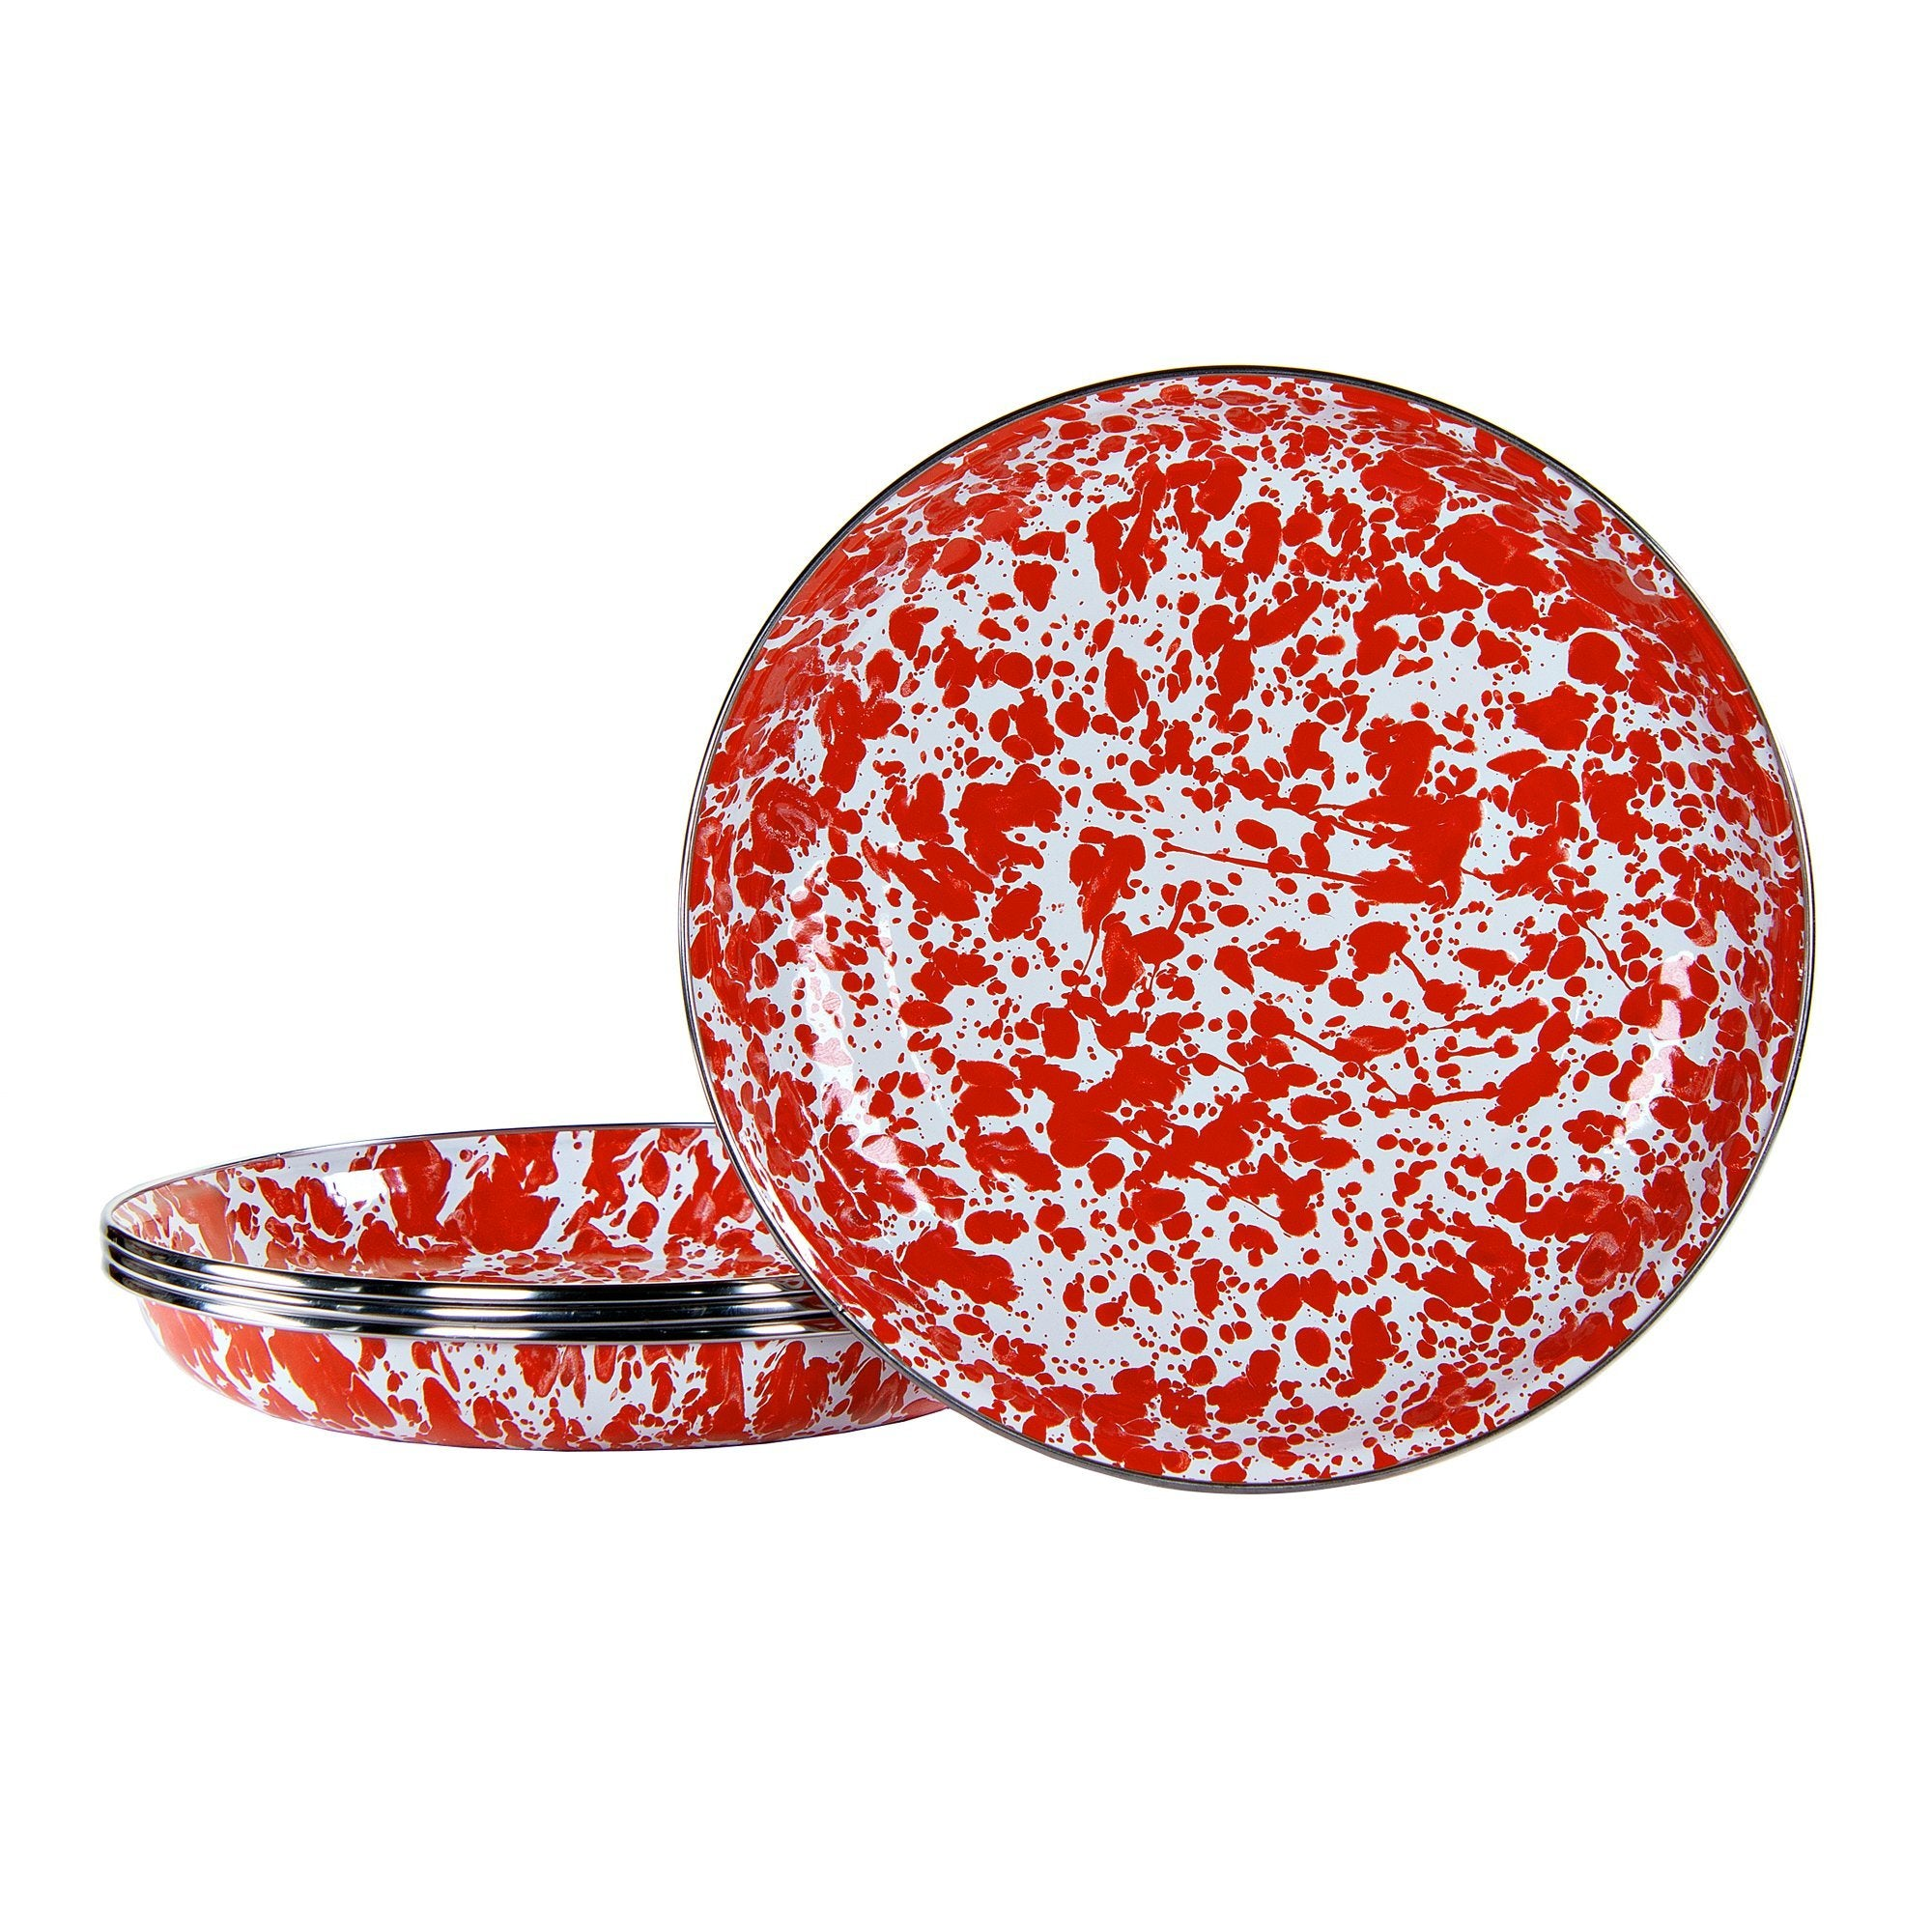 RD04 Red Swirl Pasta Plate